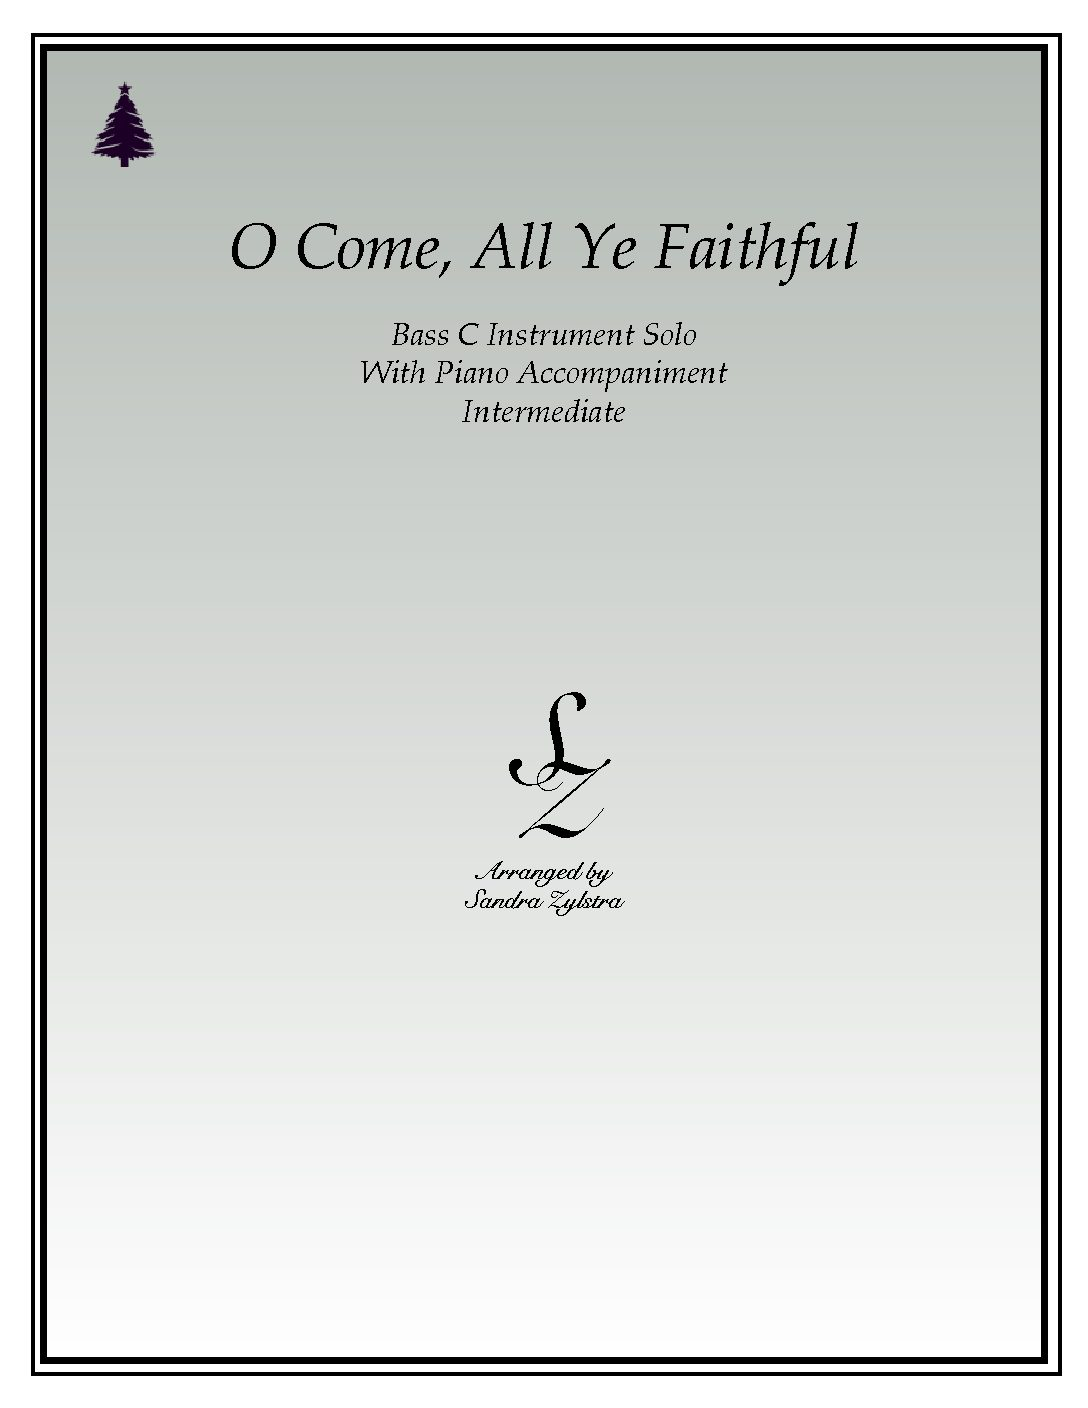 O Come, All Ye Faithful -Bass C Instrument Solo